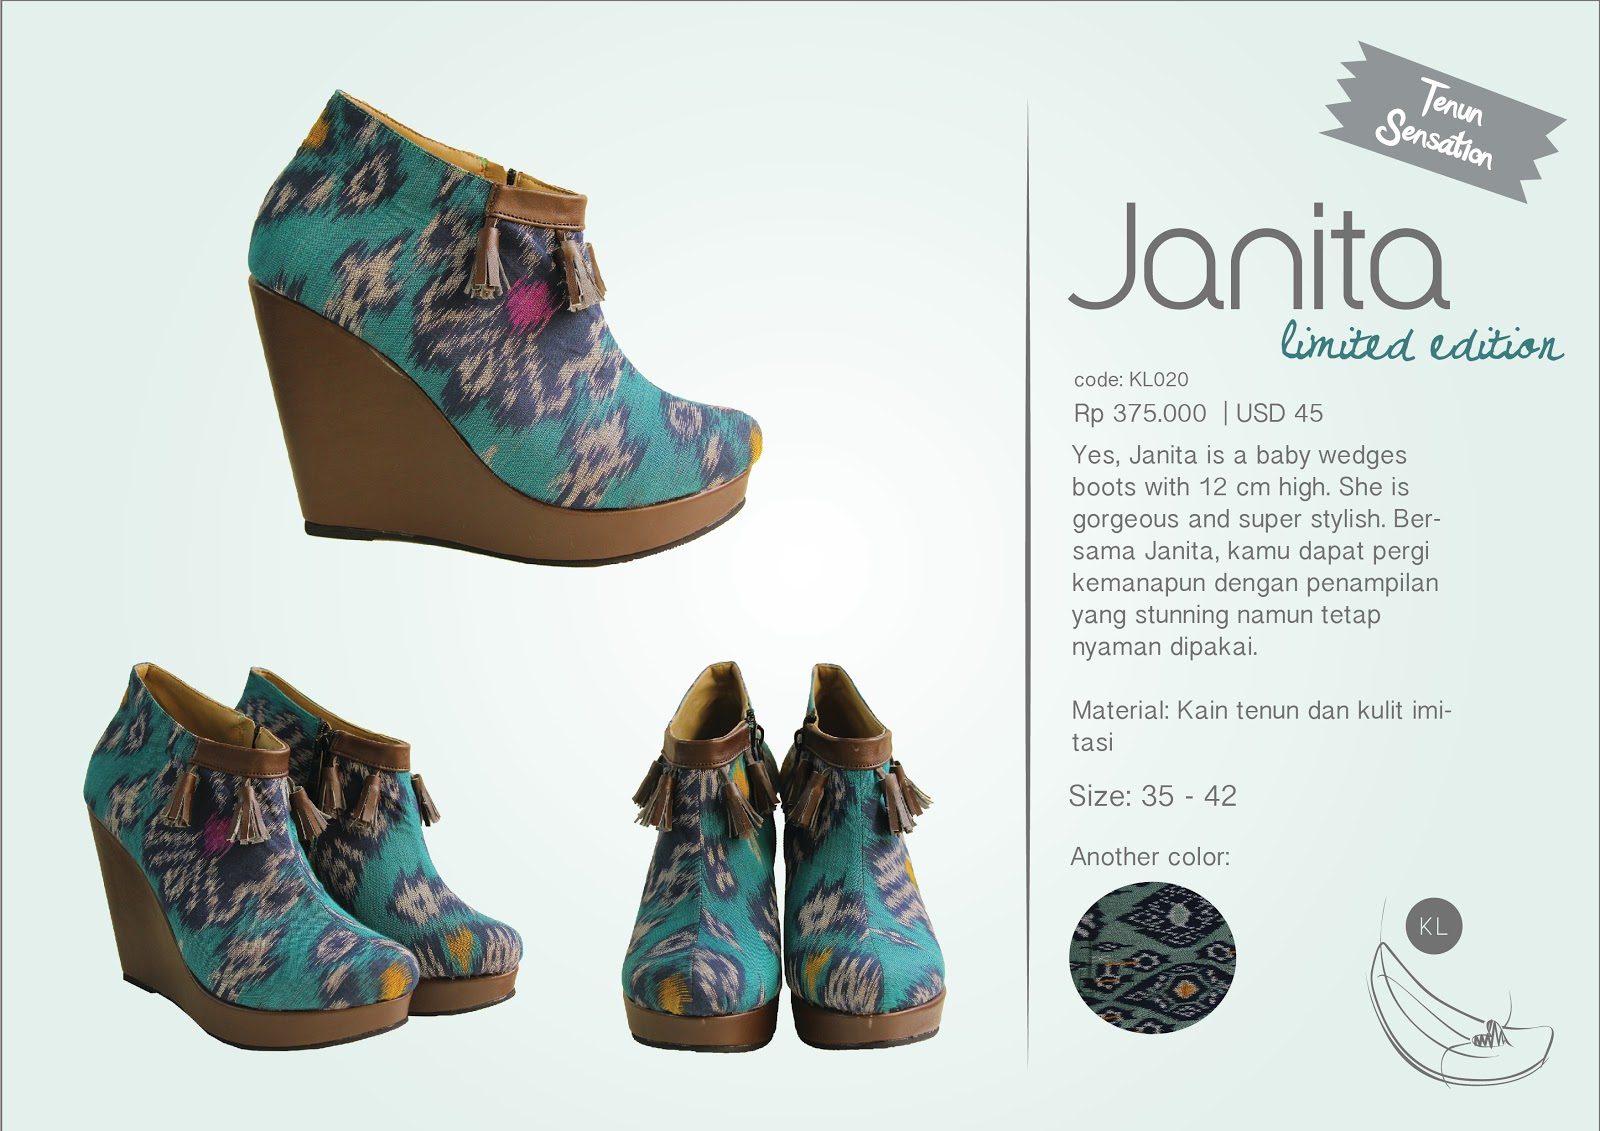 Eyecatching Eyecandy April 2013 Boot Wanita Abstrak 5cm I Found These Product To Be Interesting We Usually Wear Batik Or Tenun In Clothes But They Use The Fabric On Shoes Here Is Web Klastik Footwear